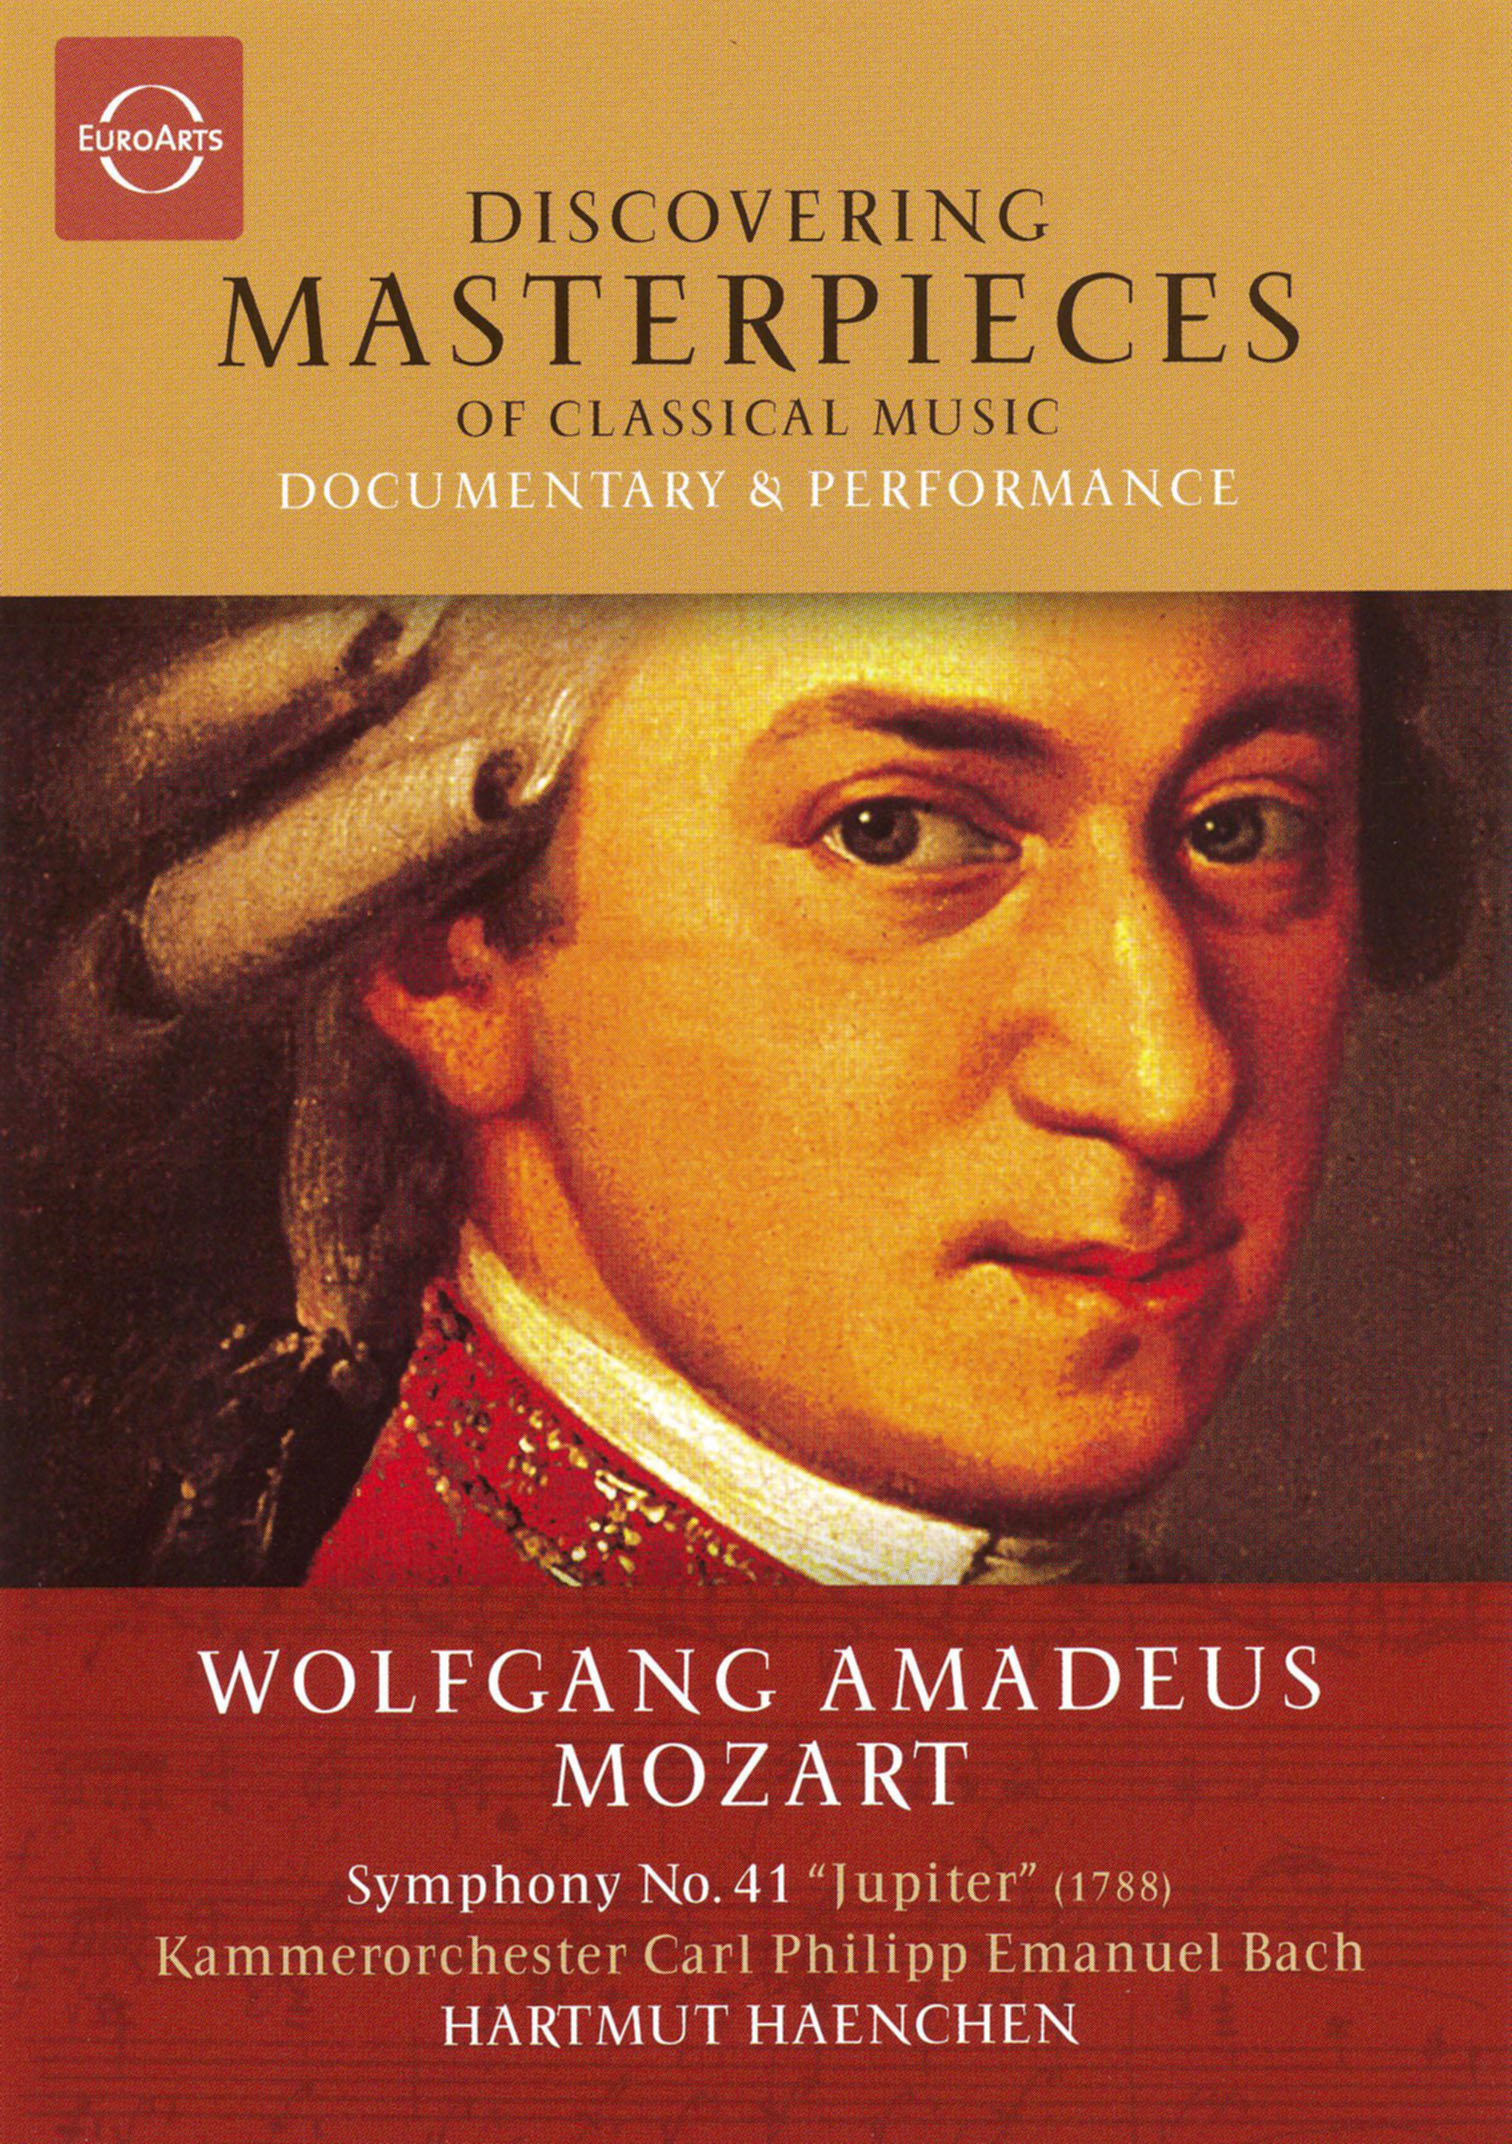 Wolfgang Amadeus Mozart was not only one of the greatest composers of the Classical period but one of the greatest of all time Surprisingly he is not